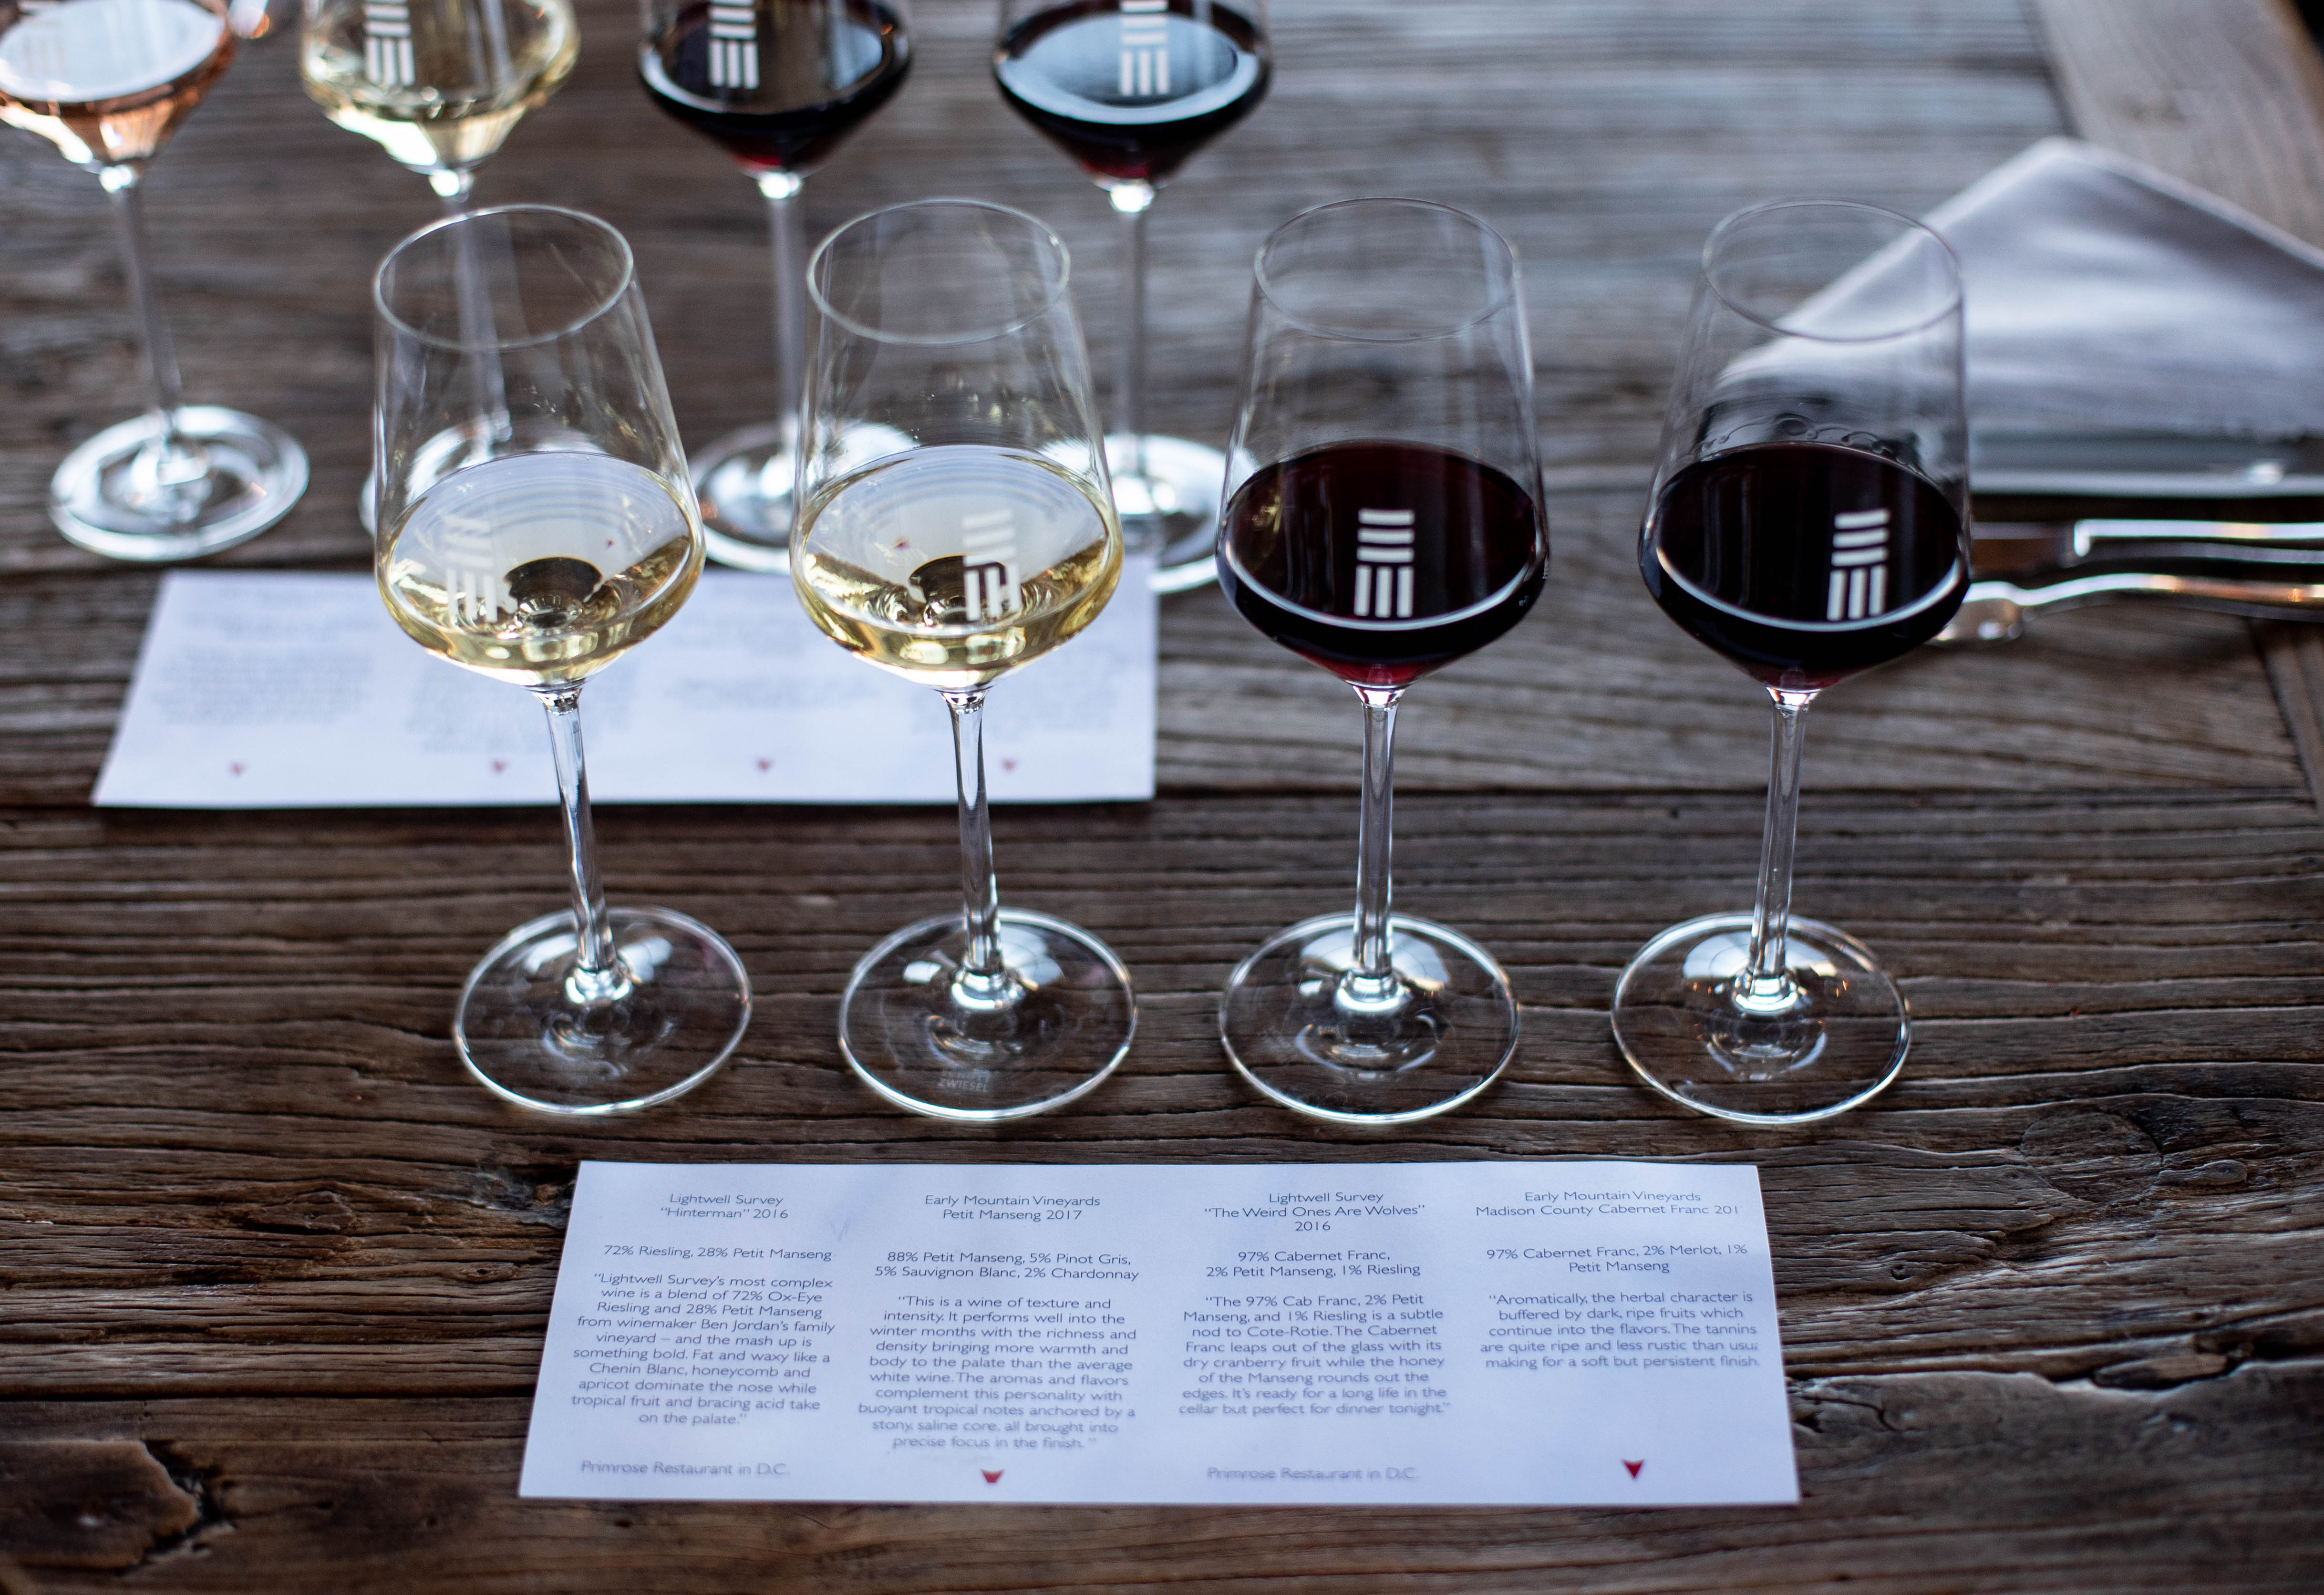 Snag a space at their tasting bar for a sampling of their current wine releases ($12); $18 gets you 9 pours of their top tipples and a take-home glass. (Image: Courtesy Early Mountain Vineyards)